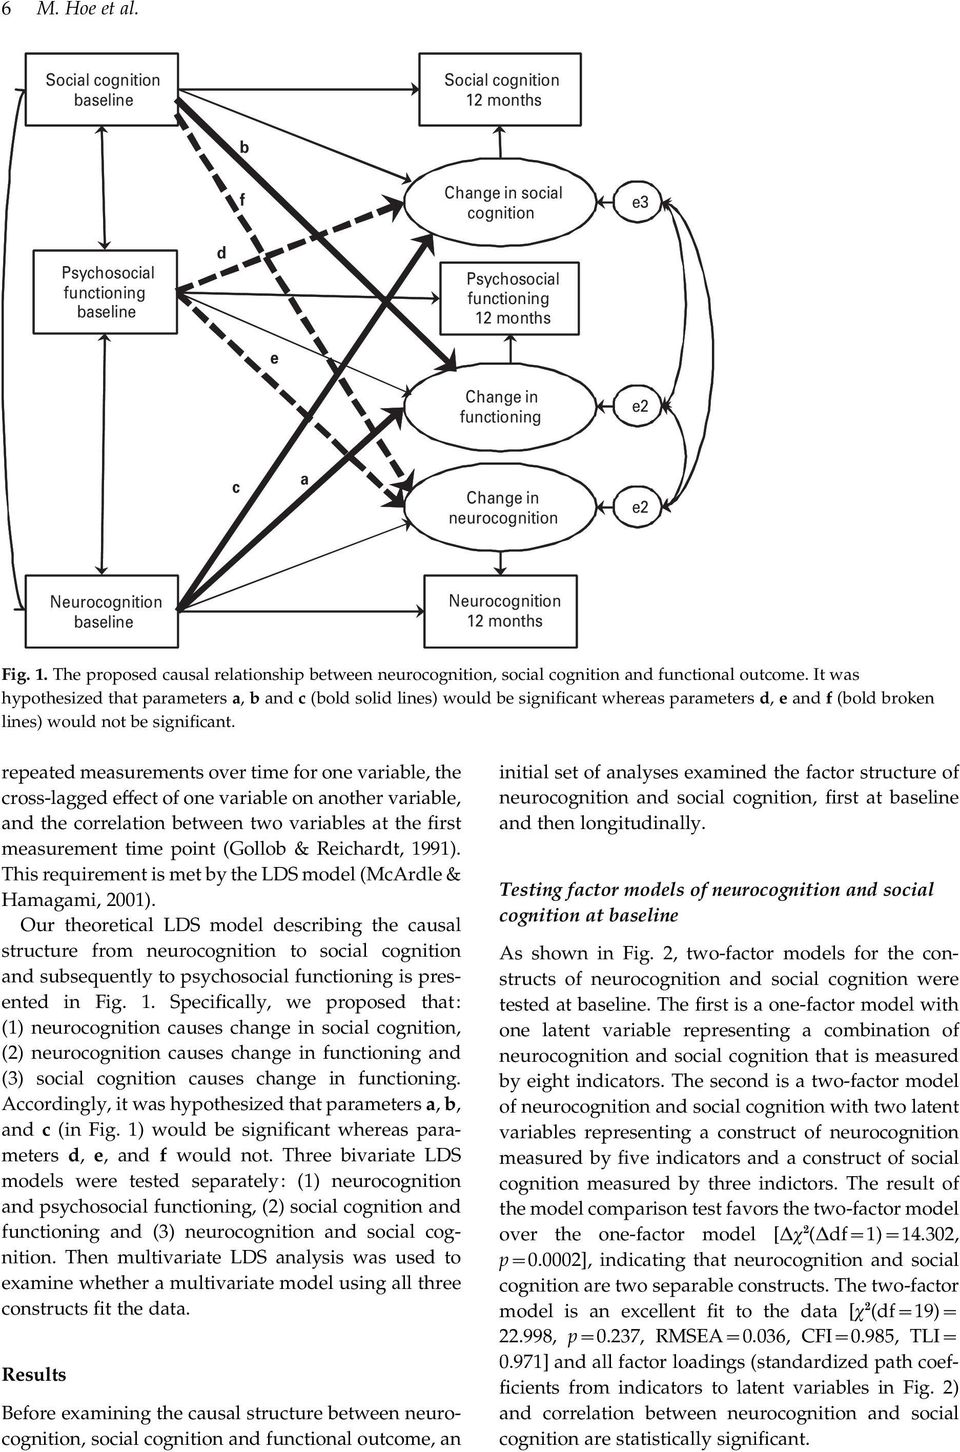 neurocognition e2 Neurocognition baseline Neurocognition 12 months Fig. 1. The proposed causal relationship between neurocognition, social cognition and functional outcome.